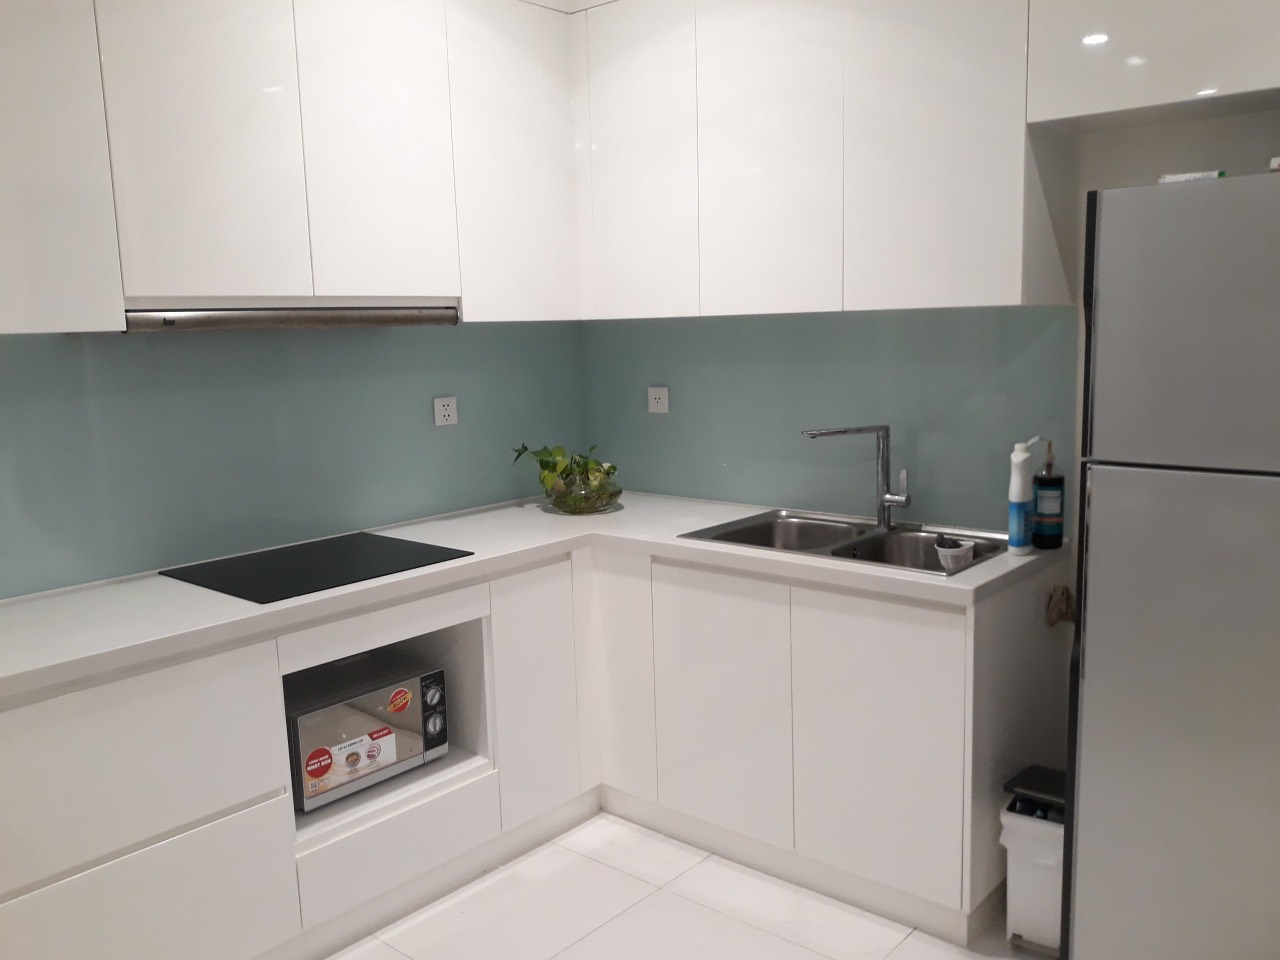 Apartment for rent BT105L5672 (2)